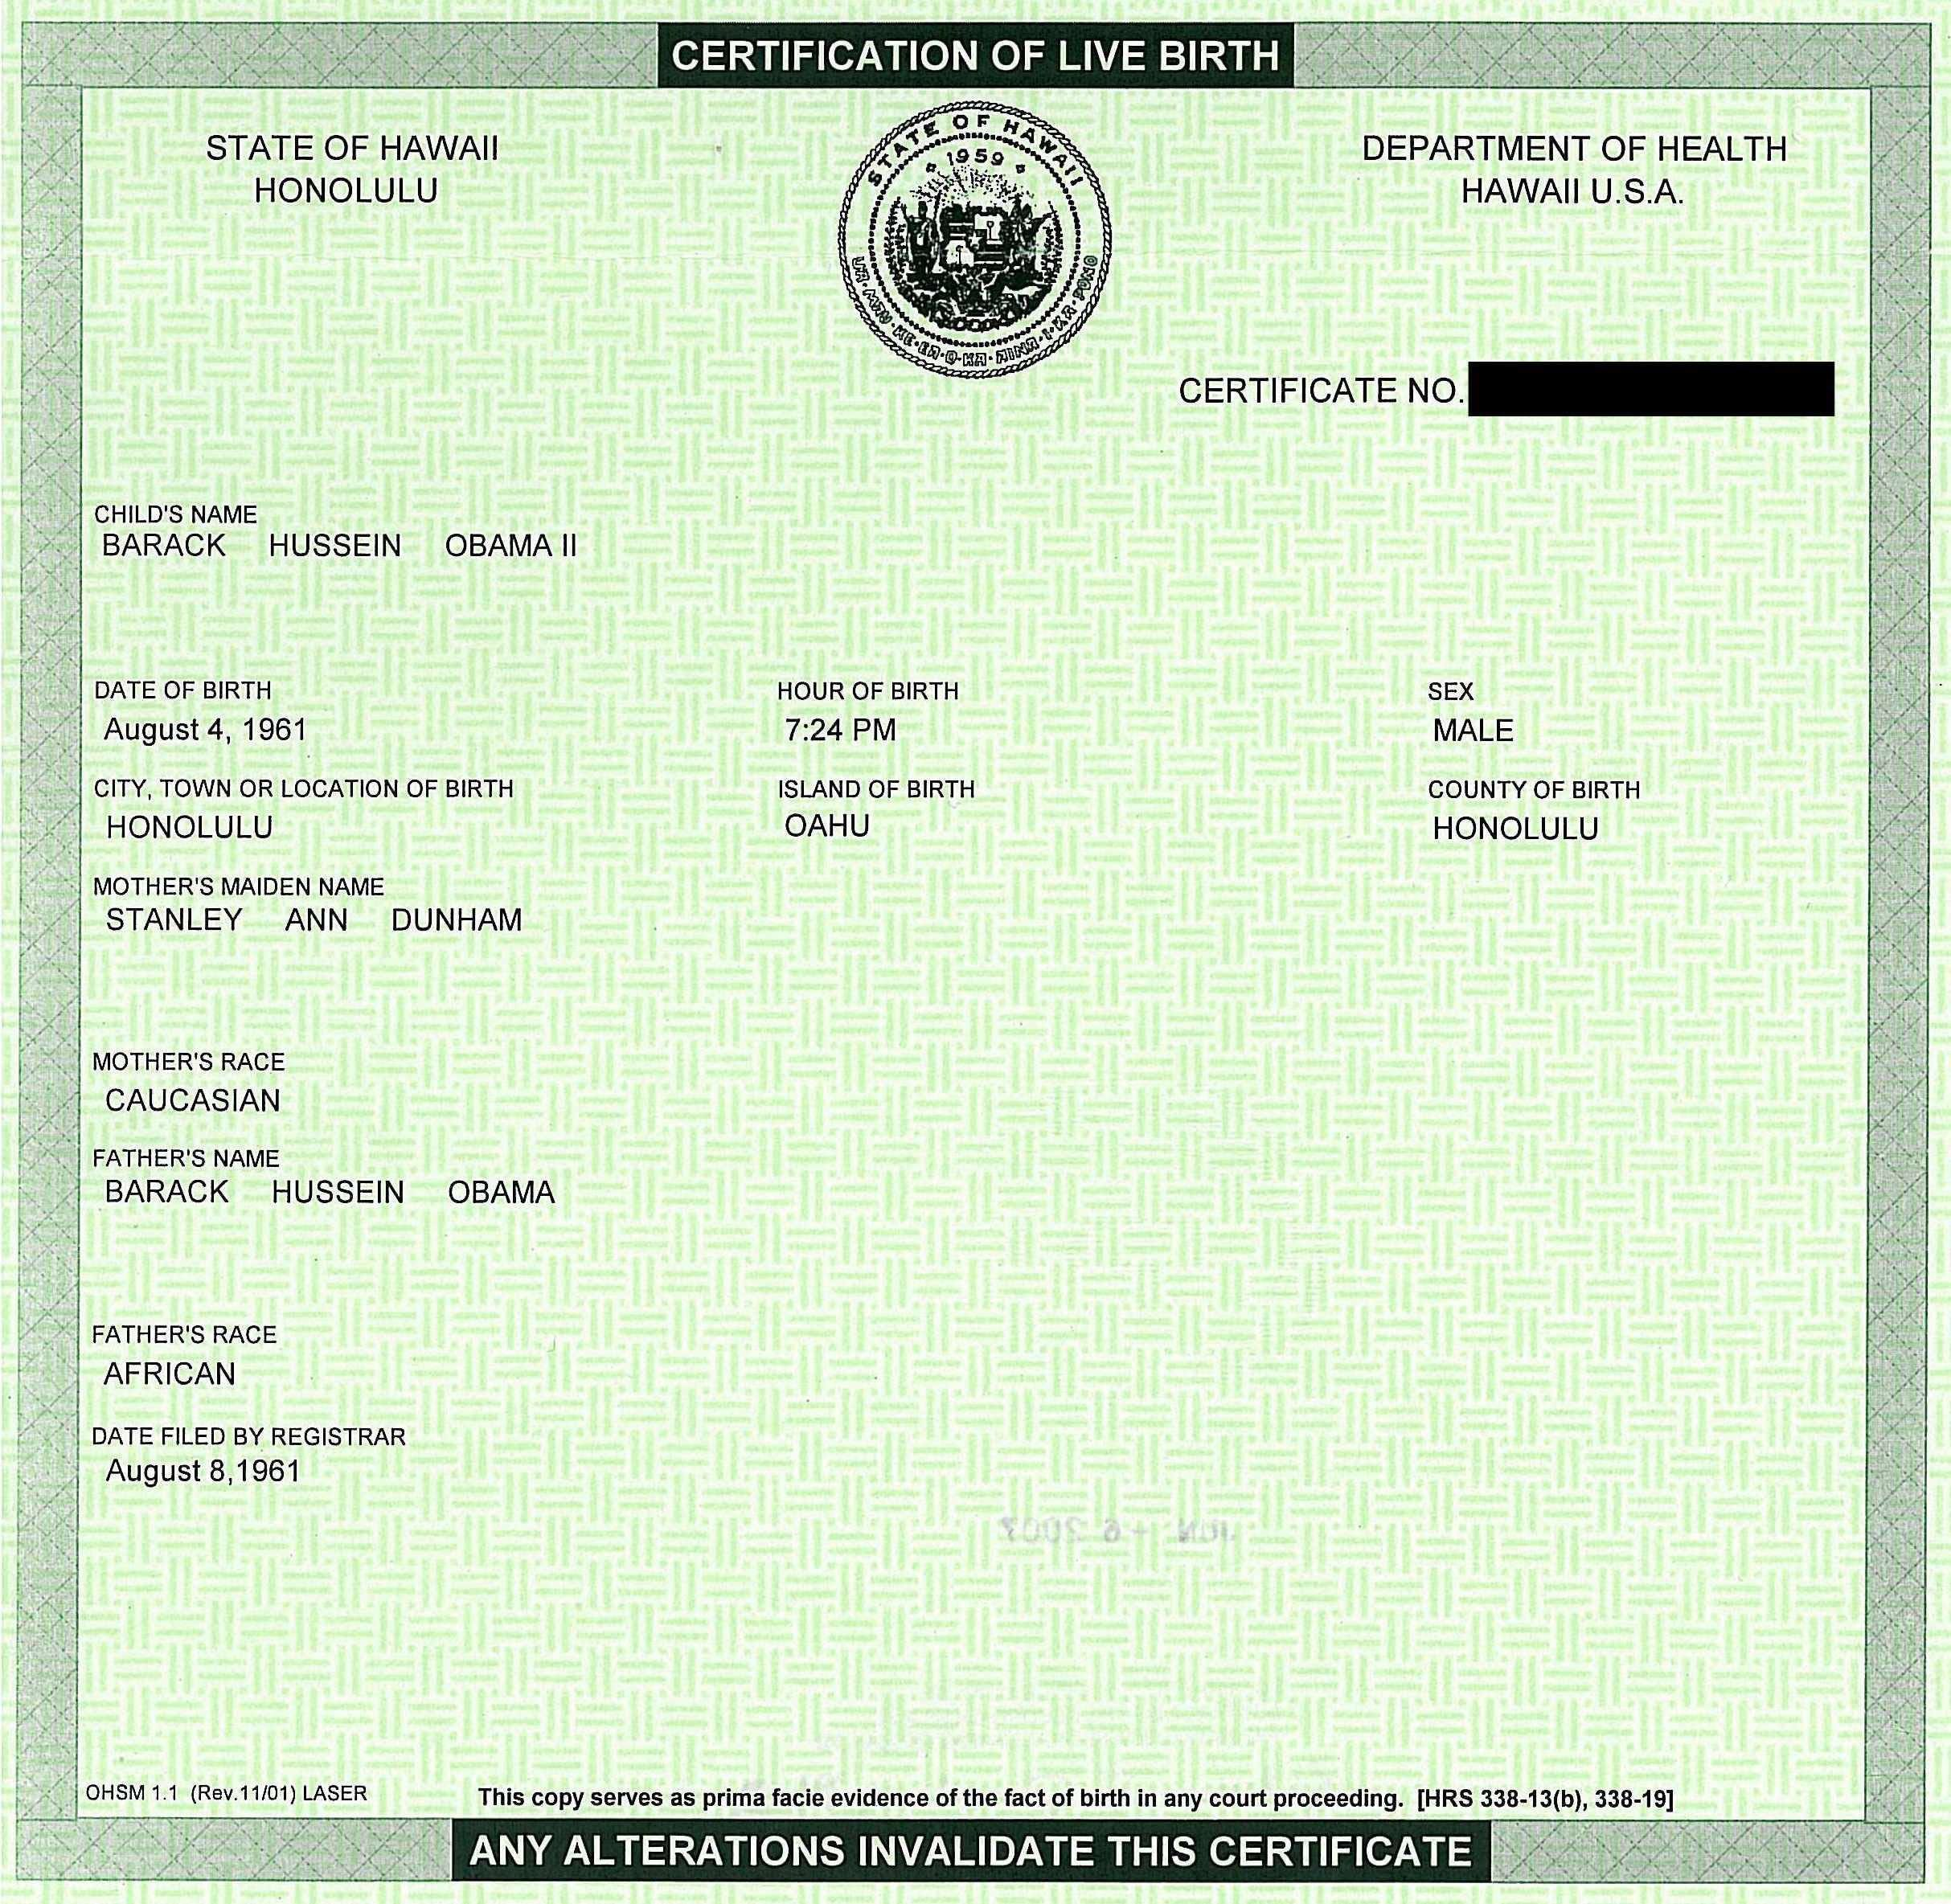 Fake Birth Certificate Education Pinterest Obama Barack Obama